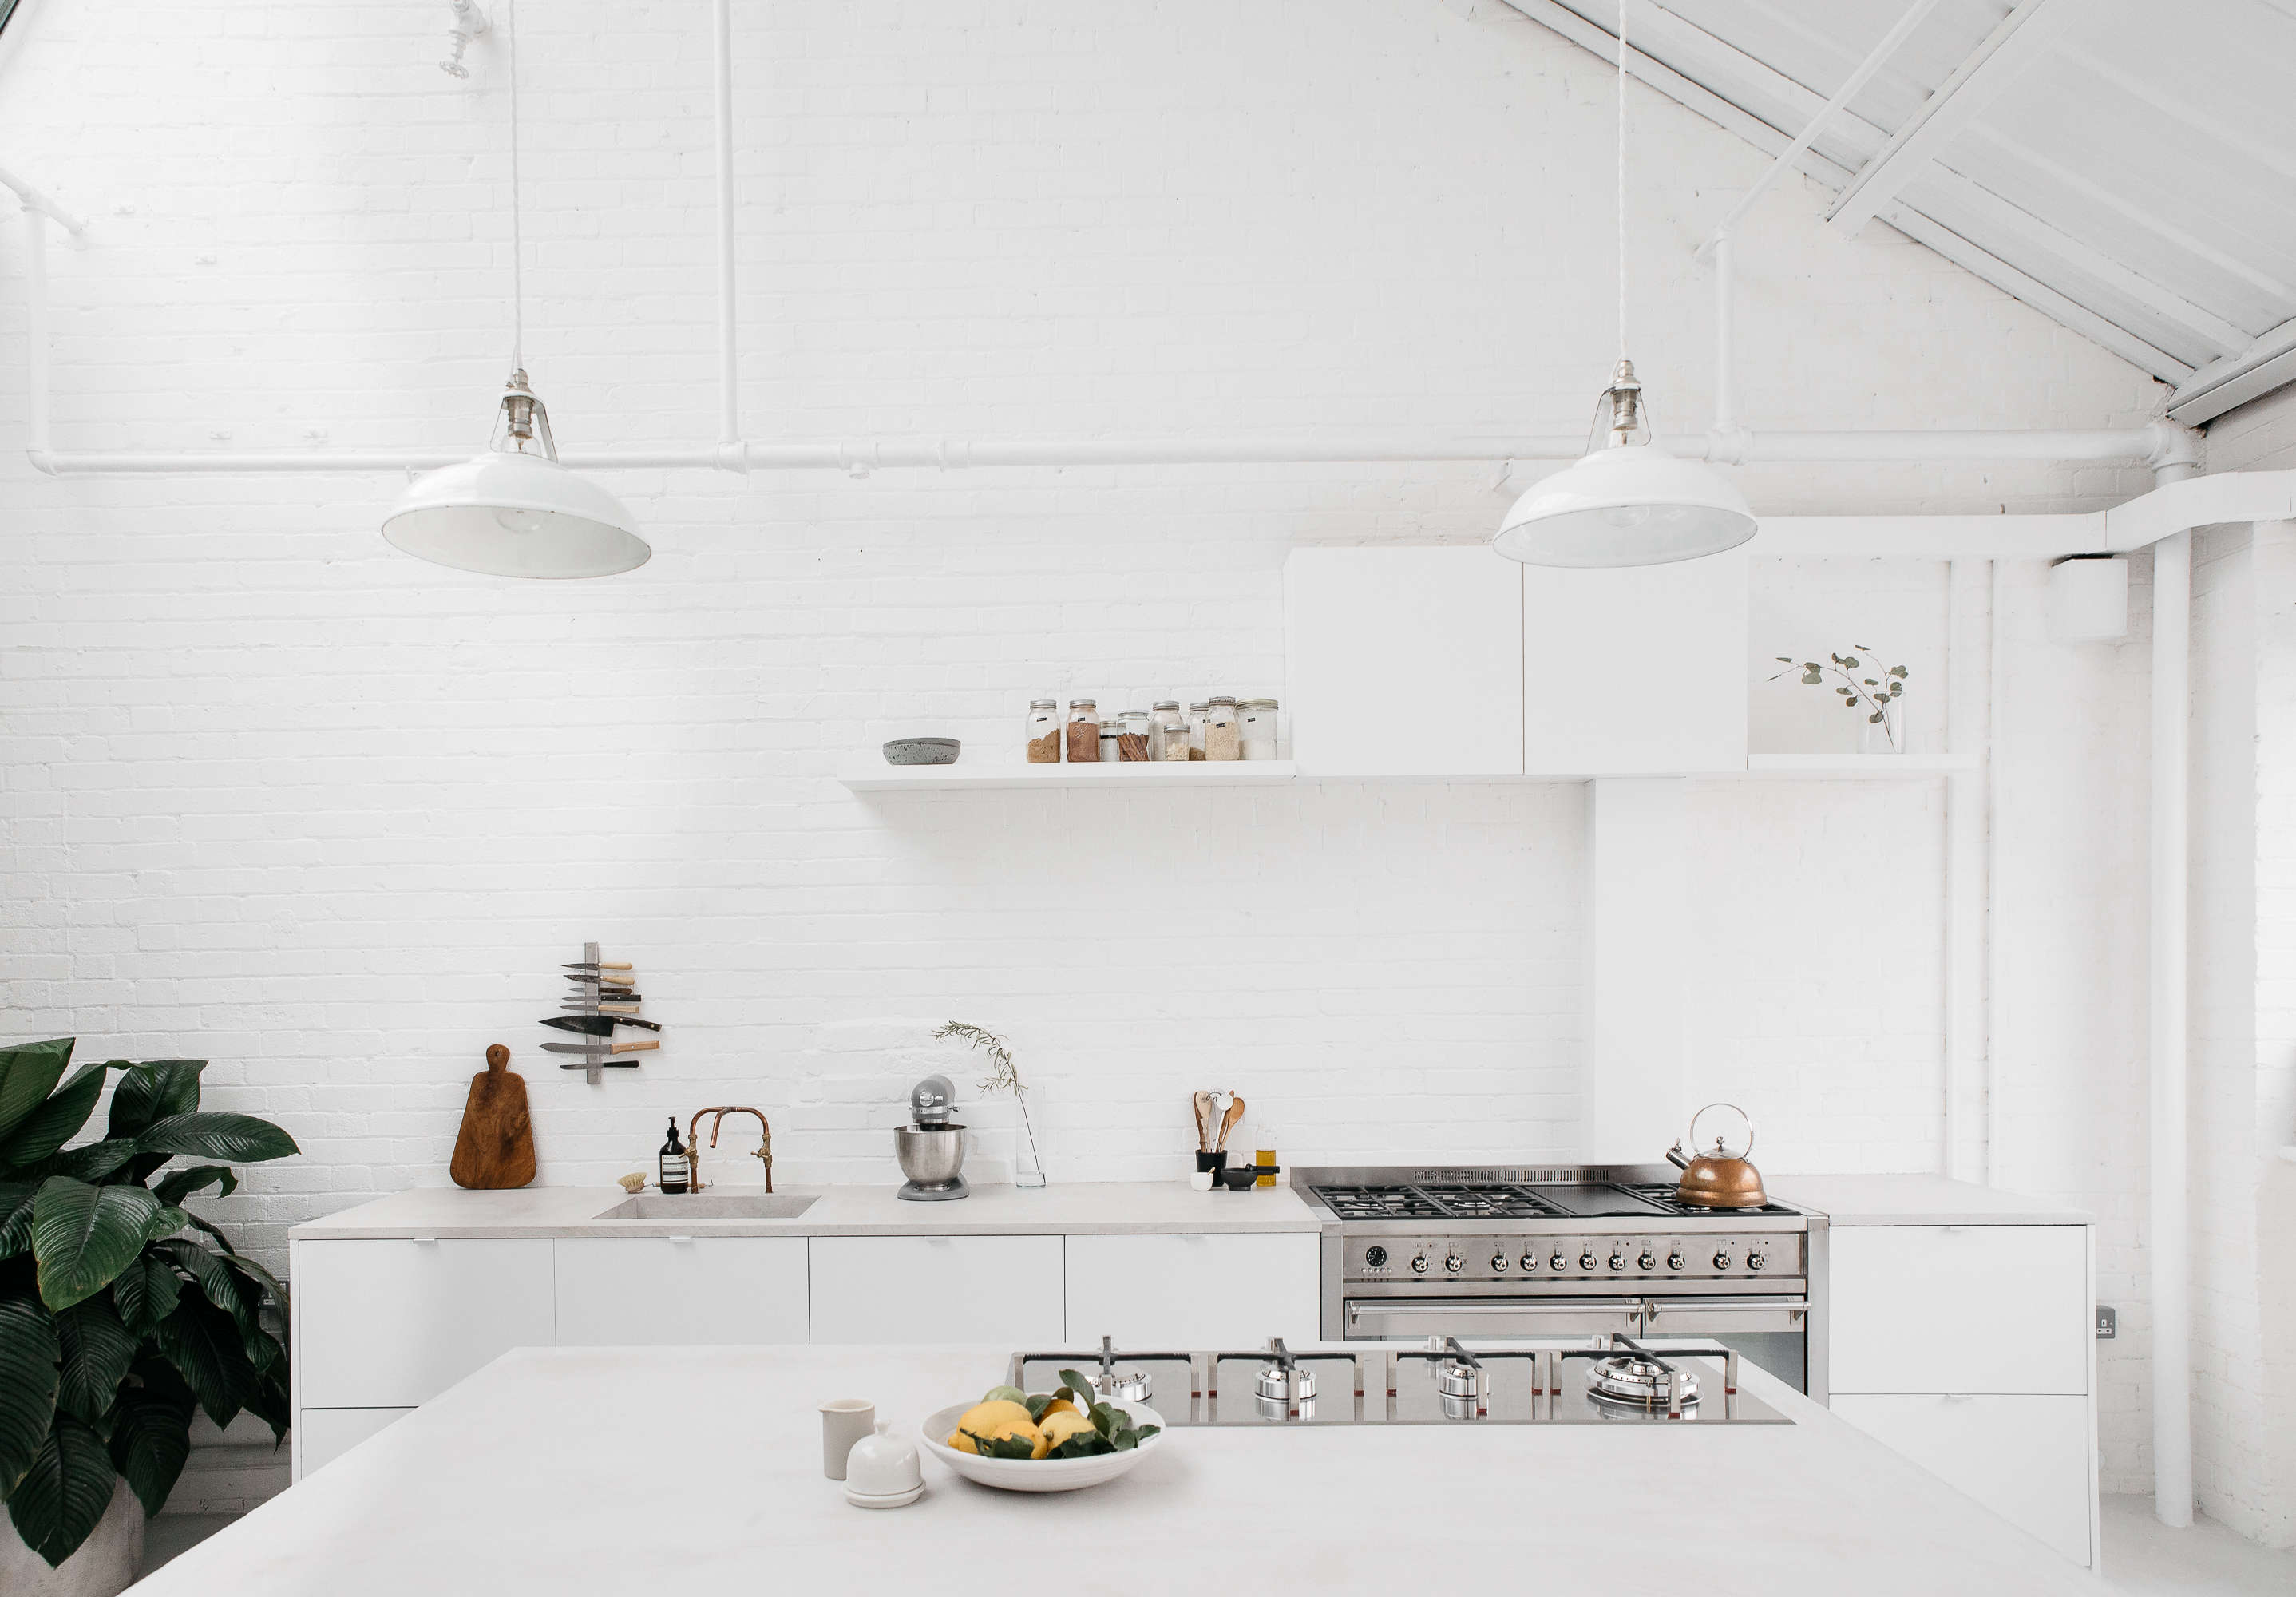 An overview of the serene, bright white kitchen. For more, see our postKitchen of the Week: An Artful Ikea Hack Kitchen by Two London Foodies.